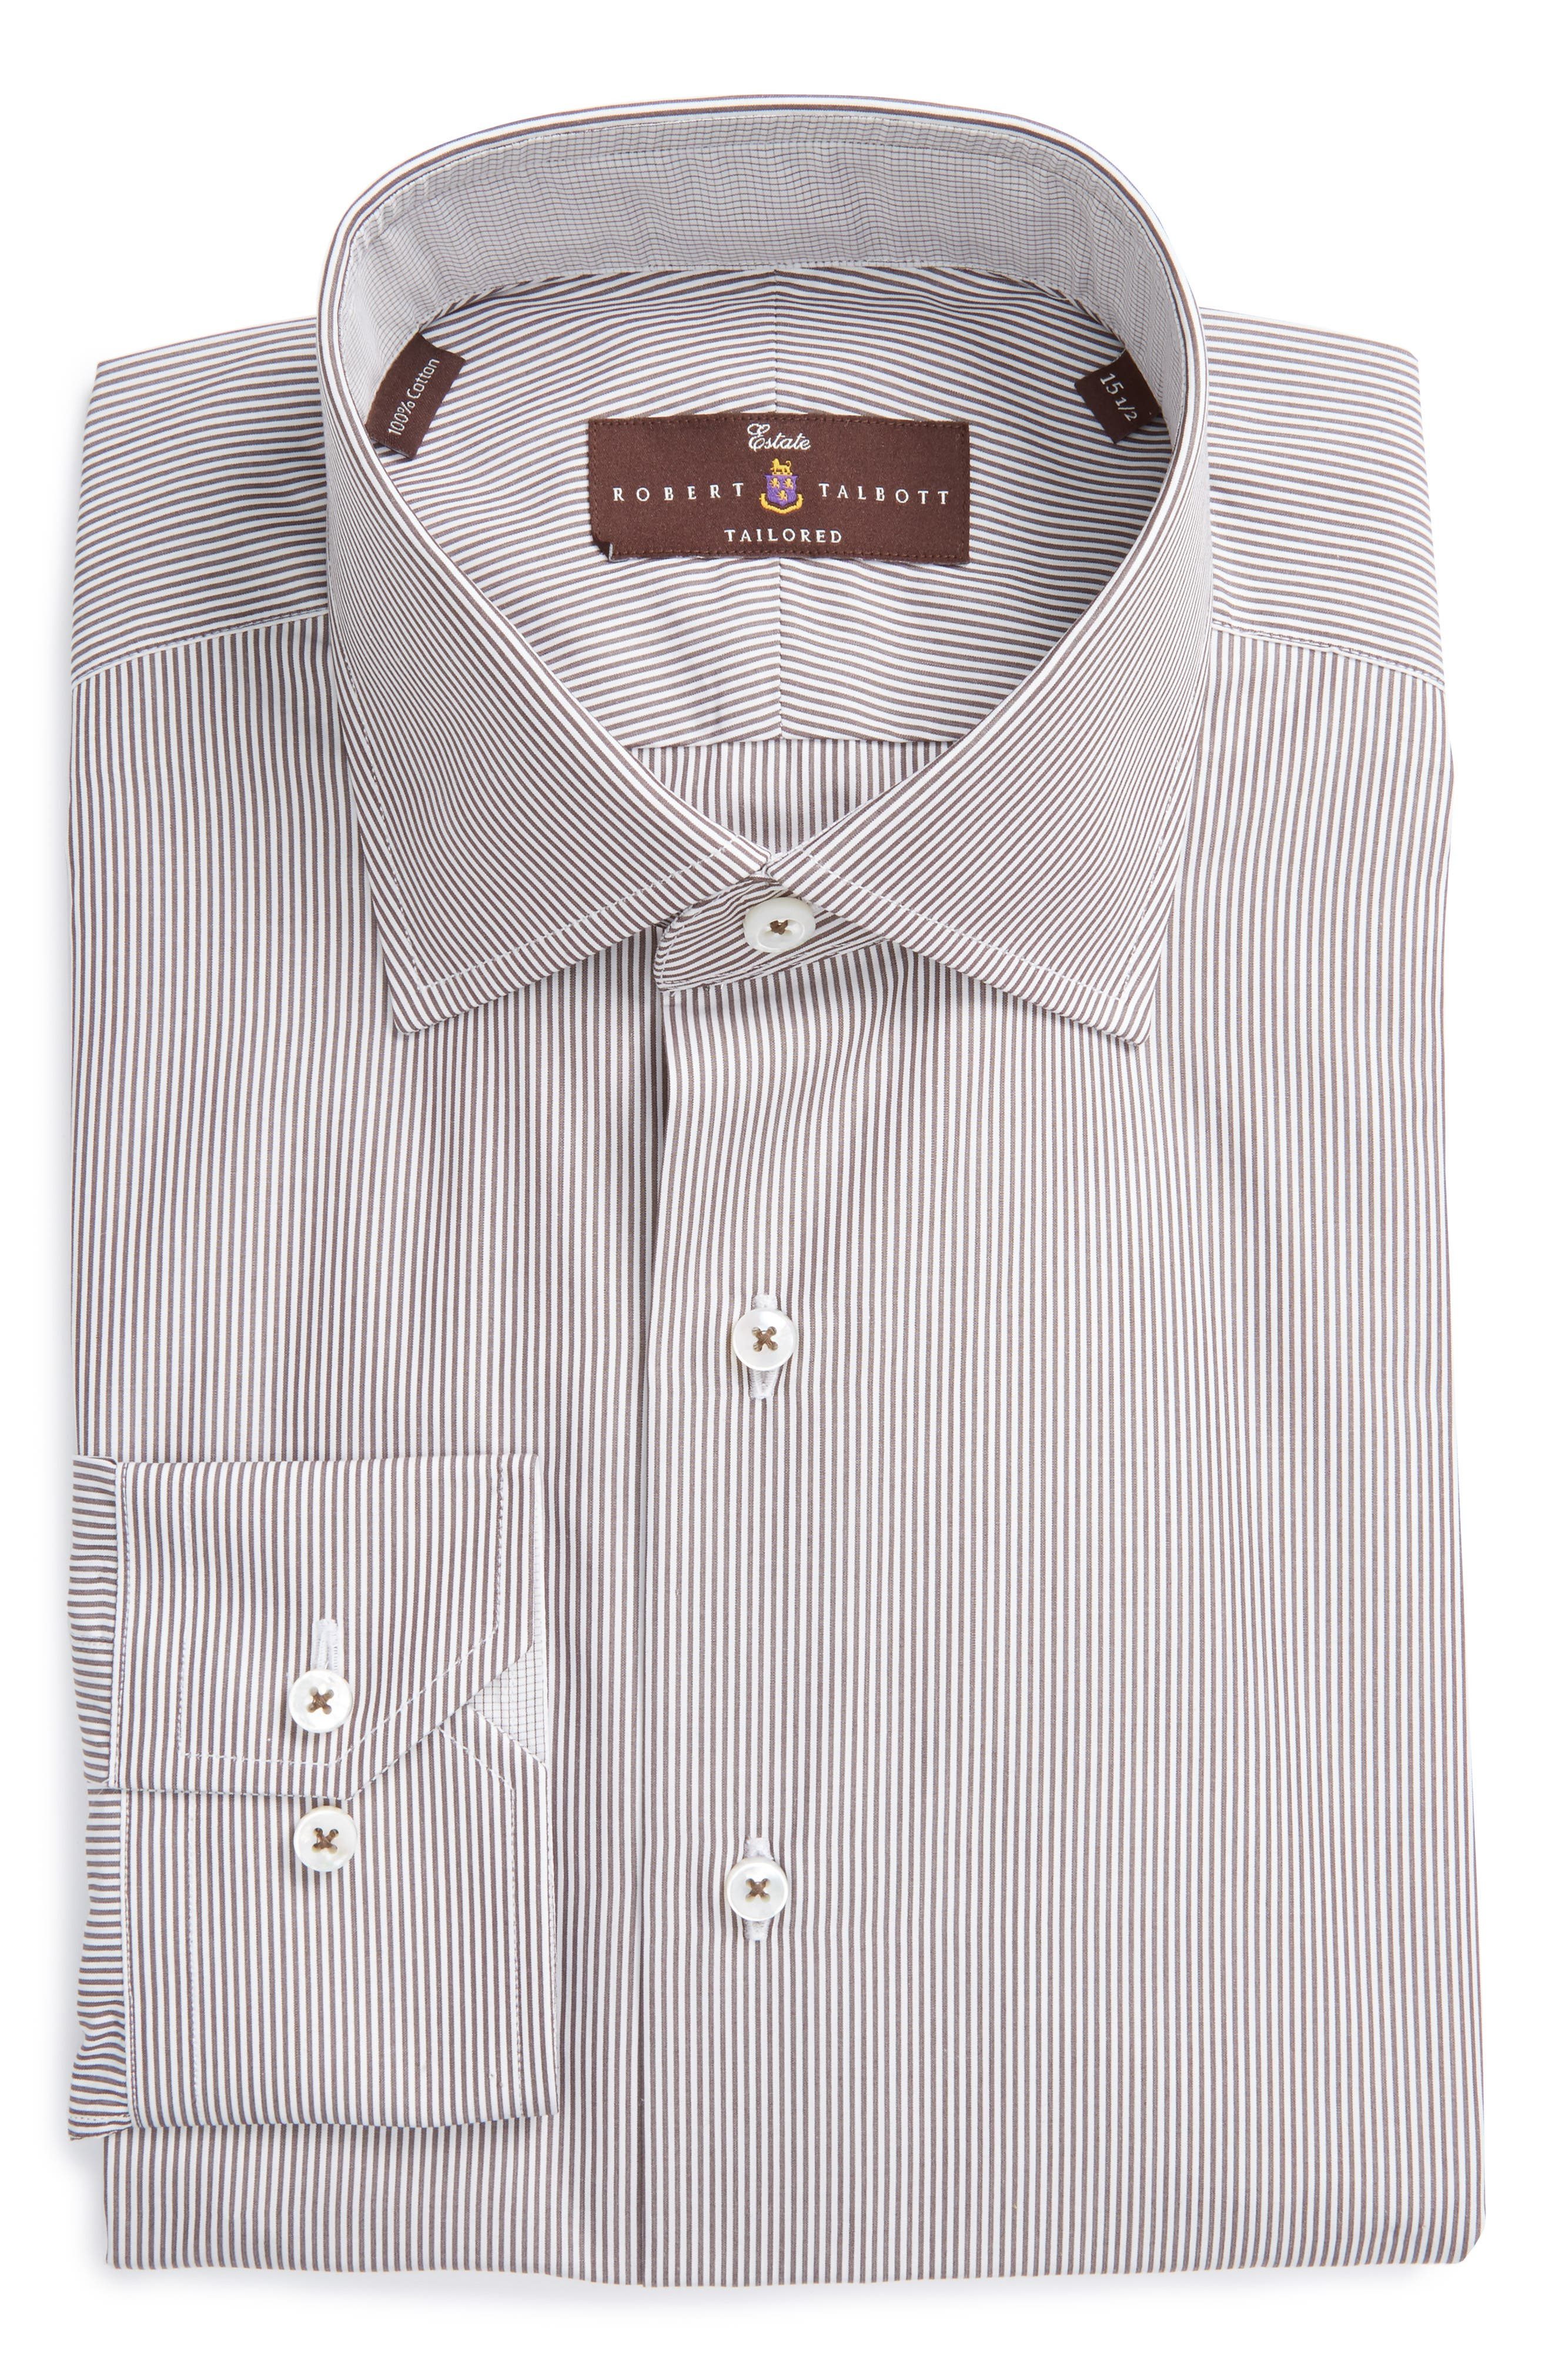 Robert Talbott Estate Tailored Fit Stripe Dress Shirt